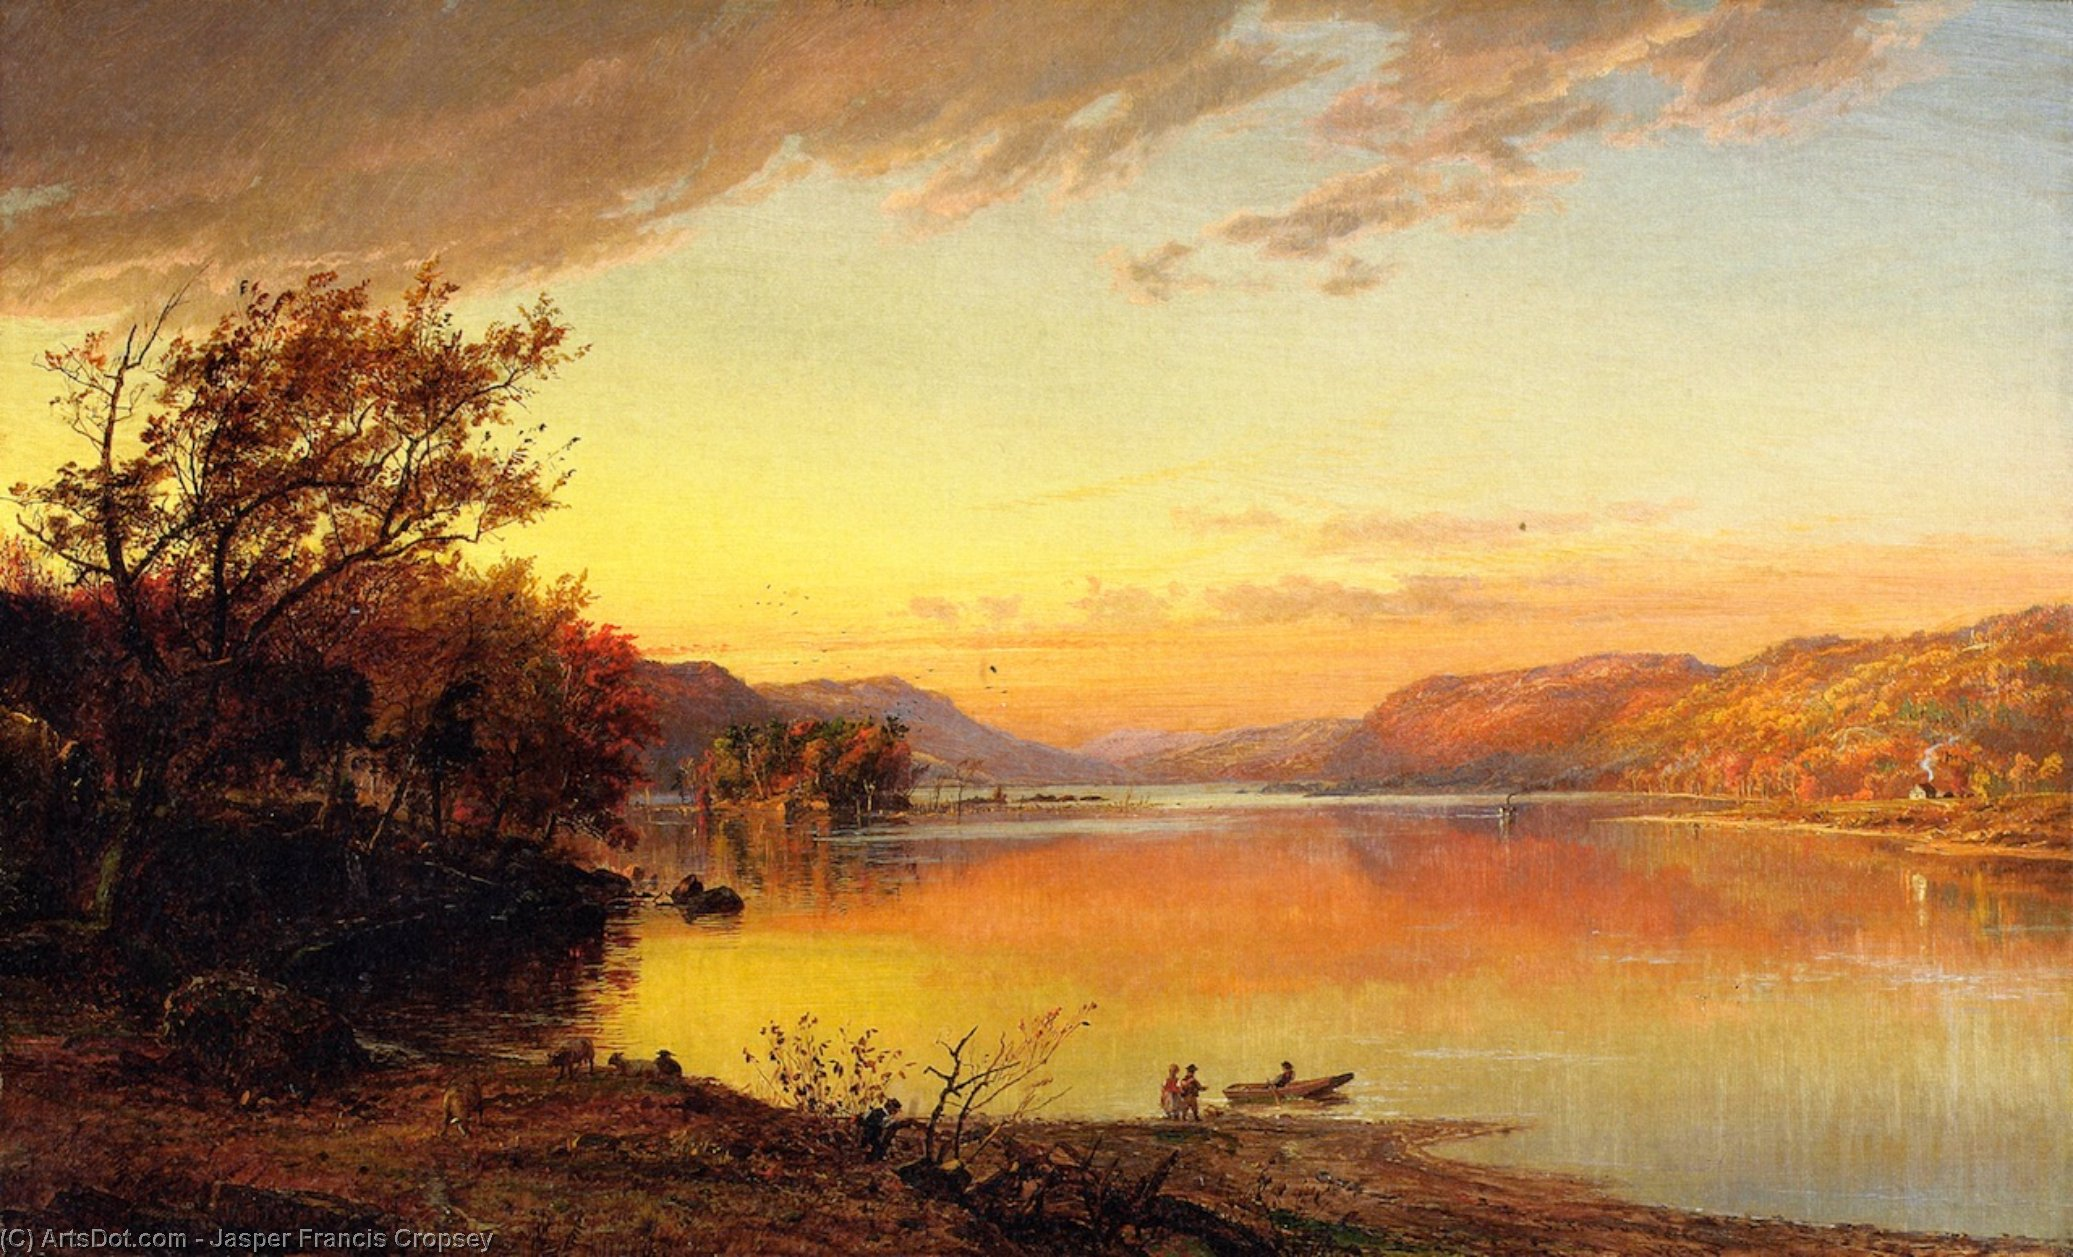 Greenwood Lake, New Jersey, 1871 by Jasper Francis Cropsey (1823-1900, United States) | ArtsDot.com